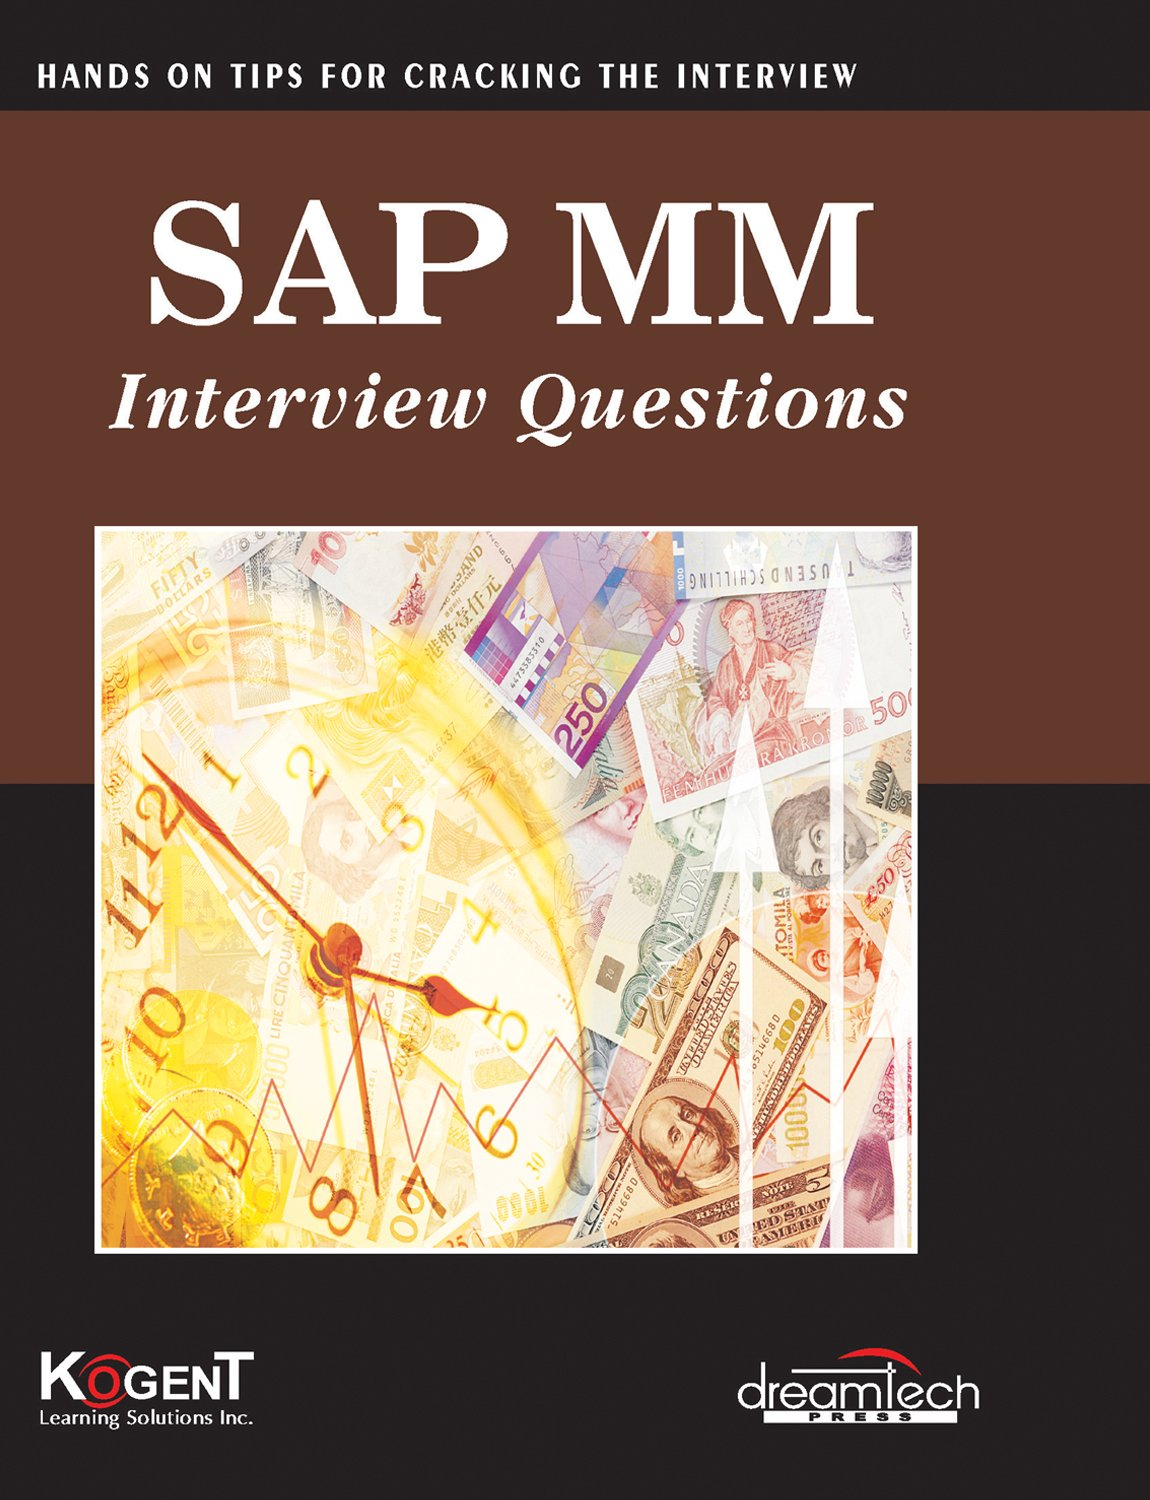 Buy sap mm interview questions hands on for cracking the buy sap mm interview questions hands on for cracking the interview book online at low prices in india sap mm interview questions hands on for cracking xflitez Image collections